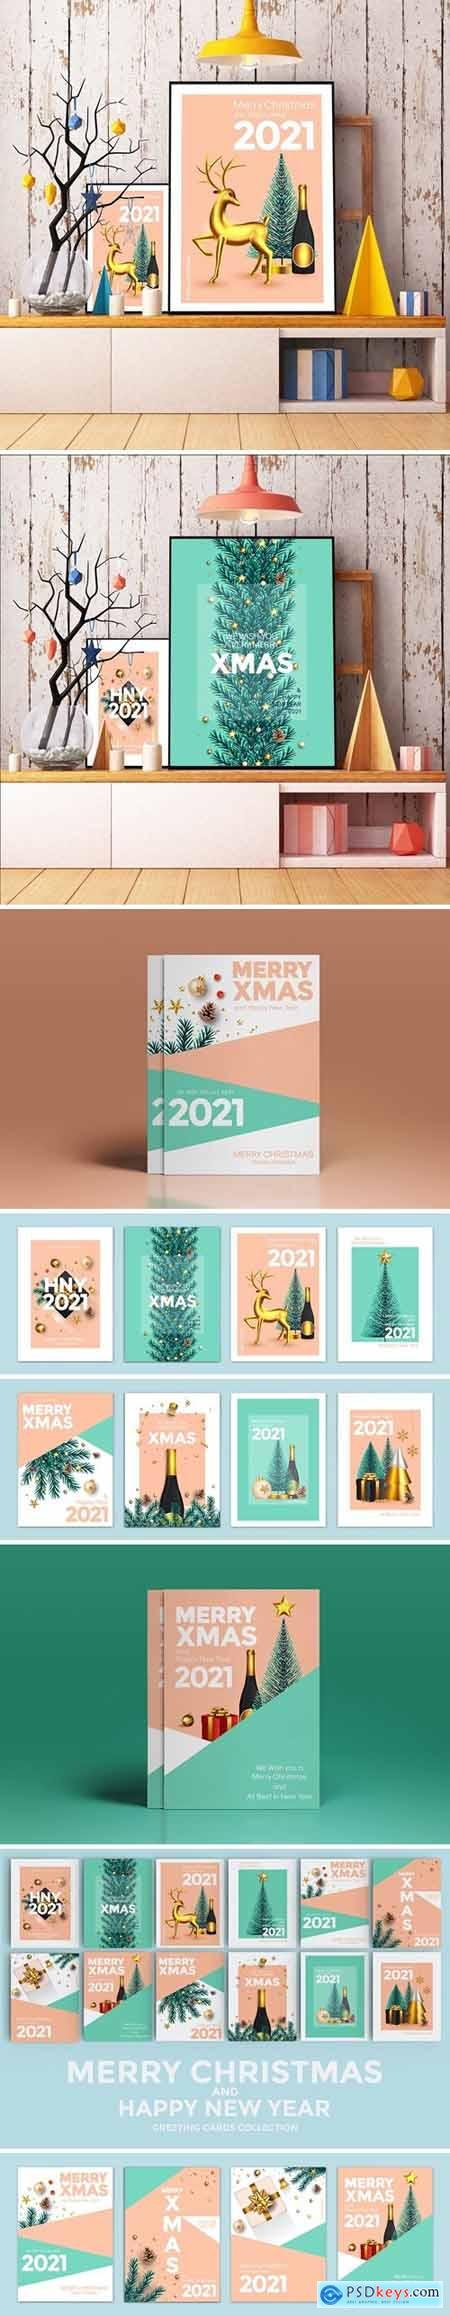 Set of 12 Christmas and Happy New Year cards